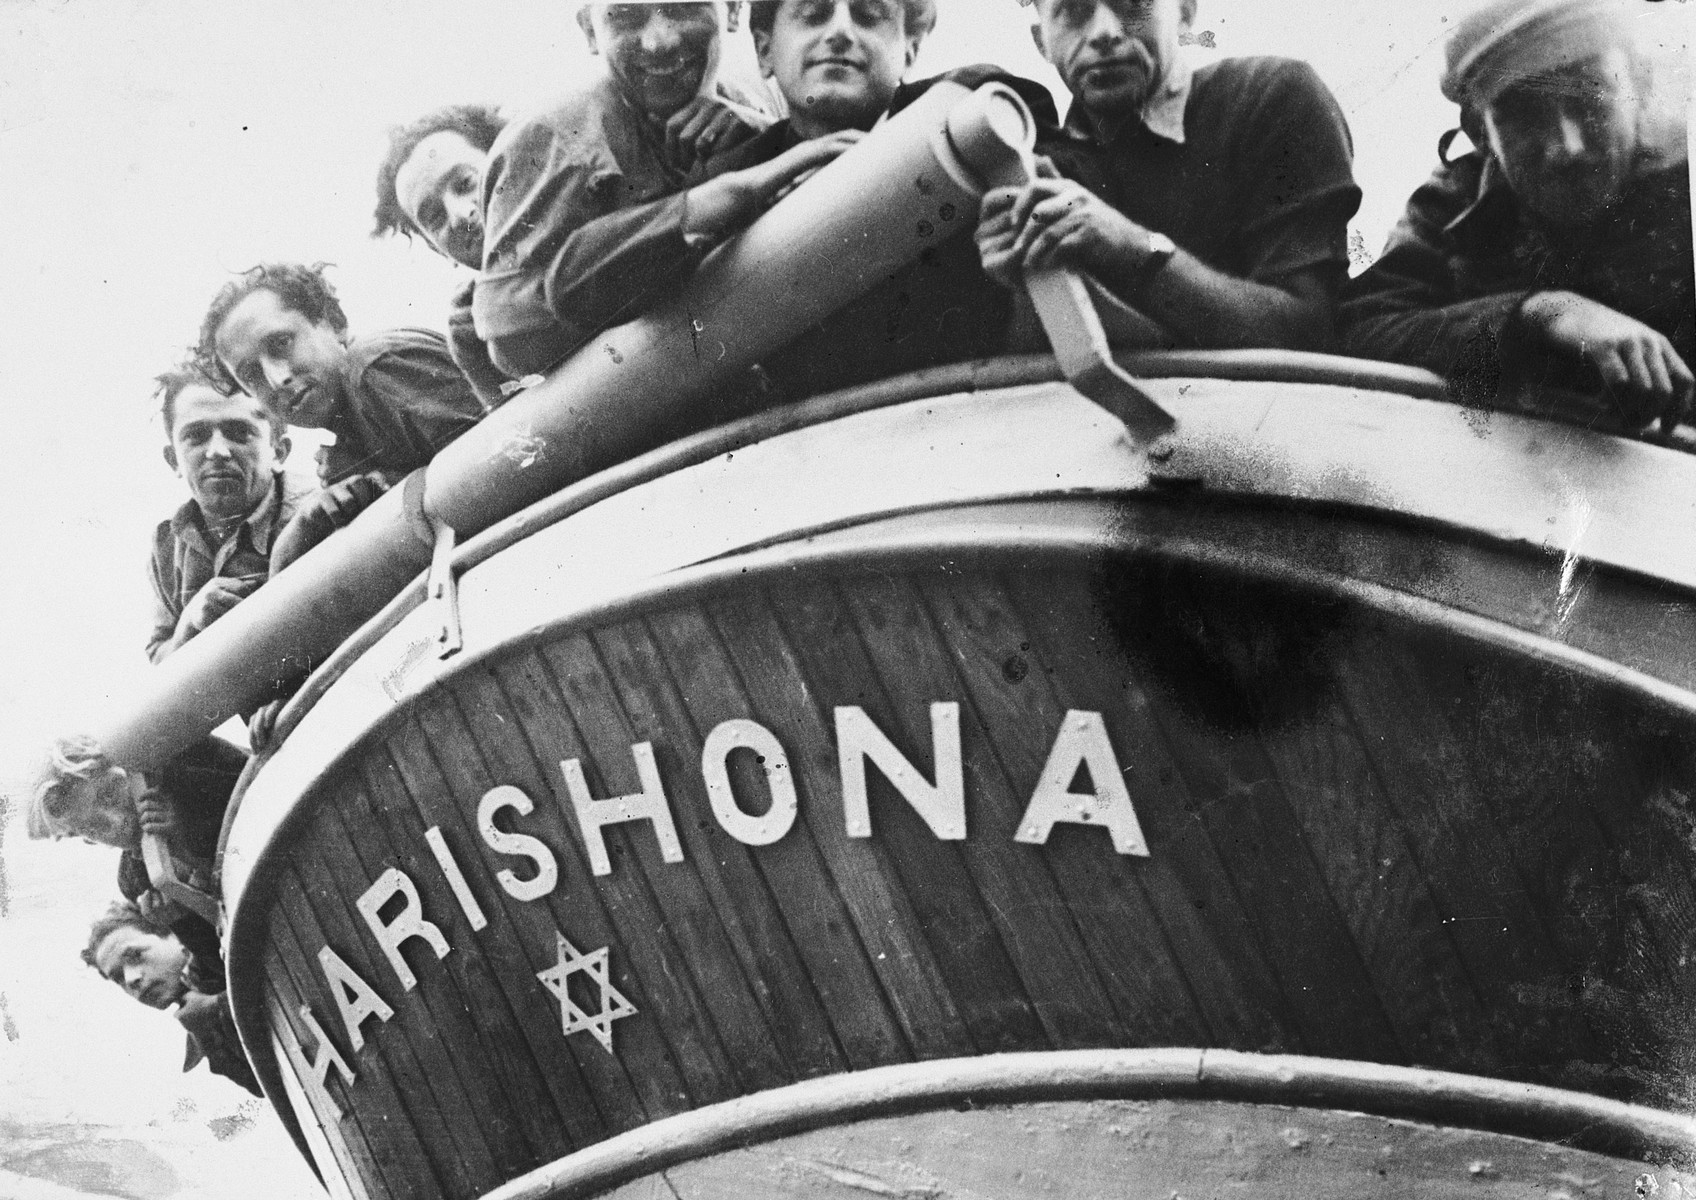 Jewish DPs look over the bow of their newly constructed fishing boat at the Migdalor hachshara, a maritime Zionist collective in Fano, Italy.  Among those pictured from right to left are: Yitzhak Goldhammer, Laufer, Kotzchik, Yuzek Kempler, Sevek and Patt.